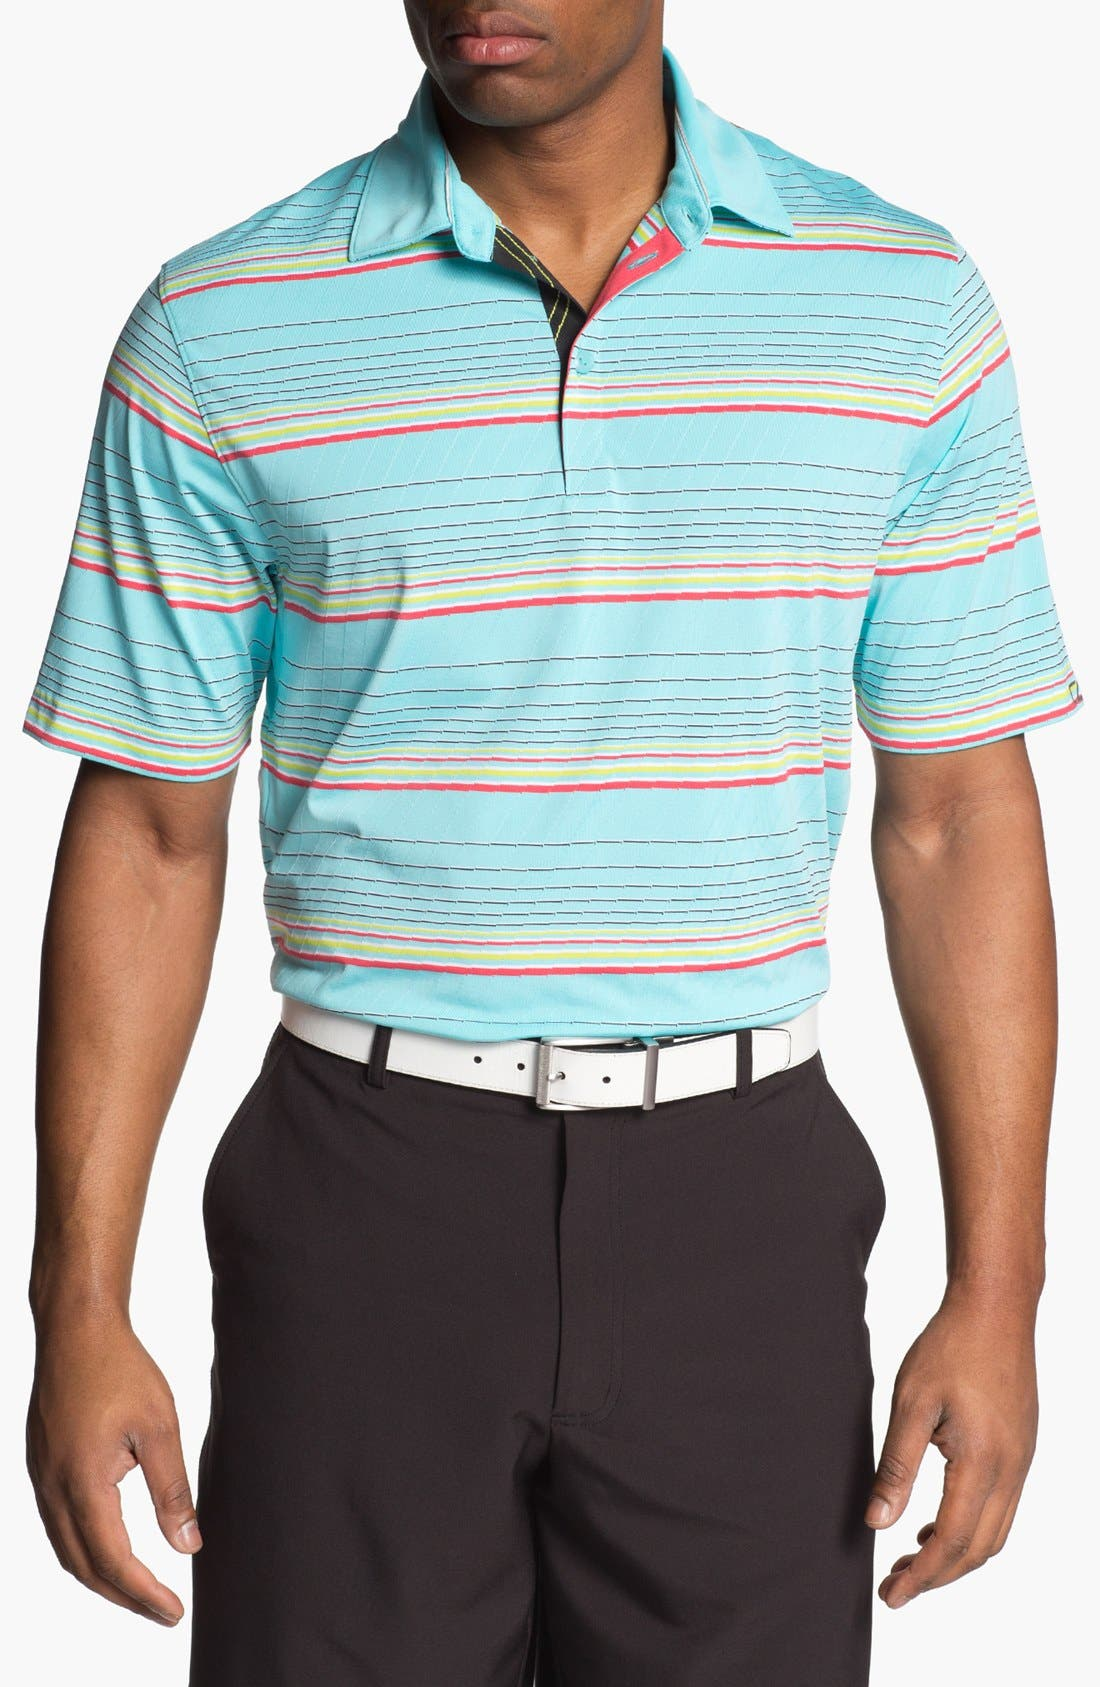 Alternate Image 1 Selected - Cutter & Buck 'Barion Stripe' DryTec Polo